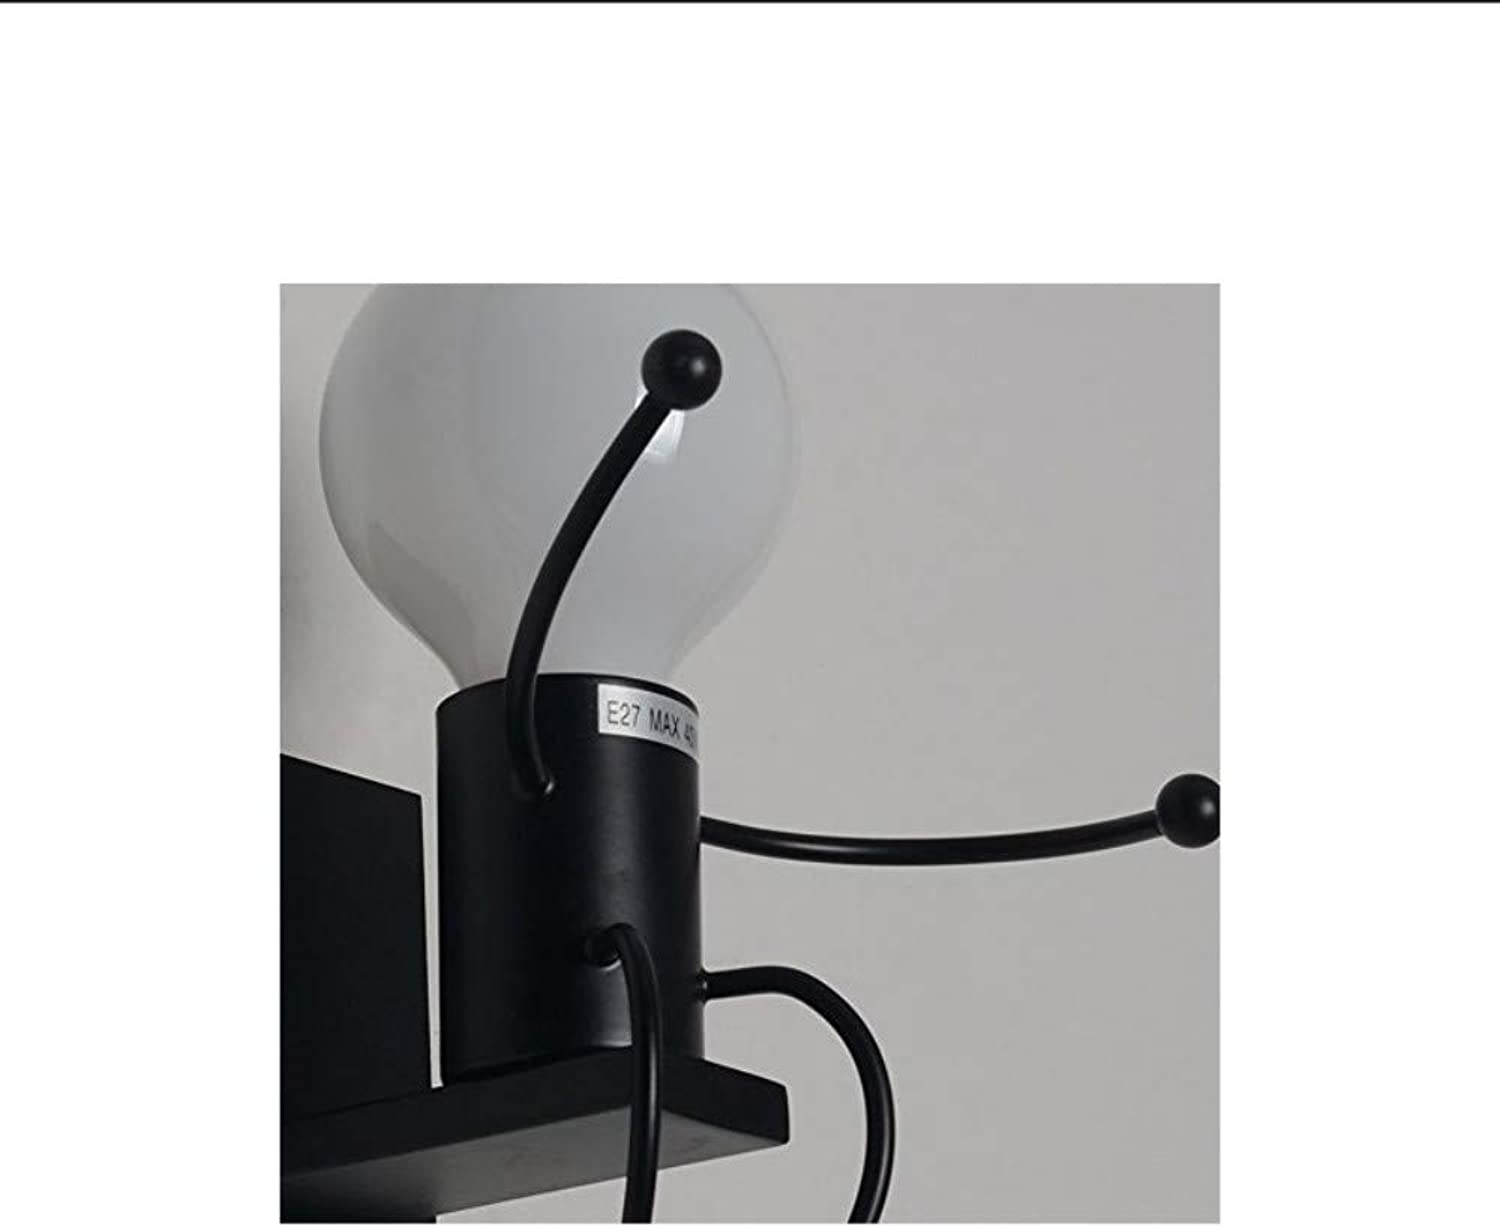 Bedroom Bedside Lamp, Minimalist Creative Villain Wall Lighting